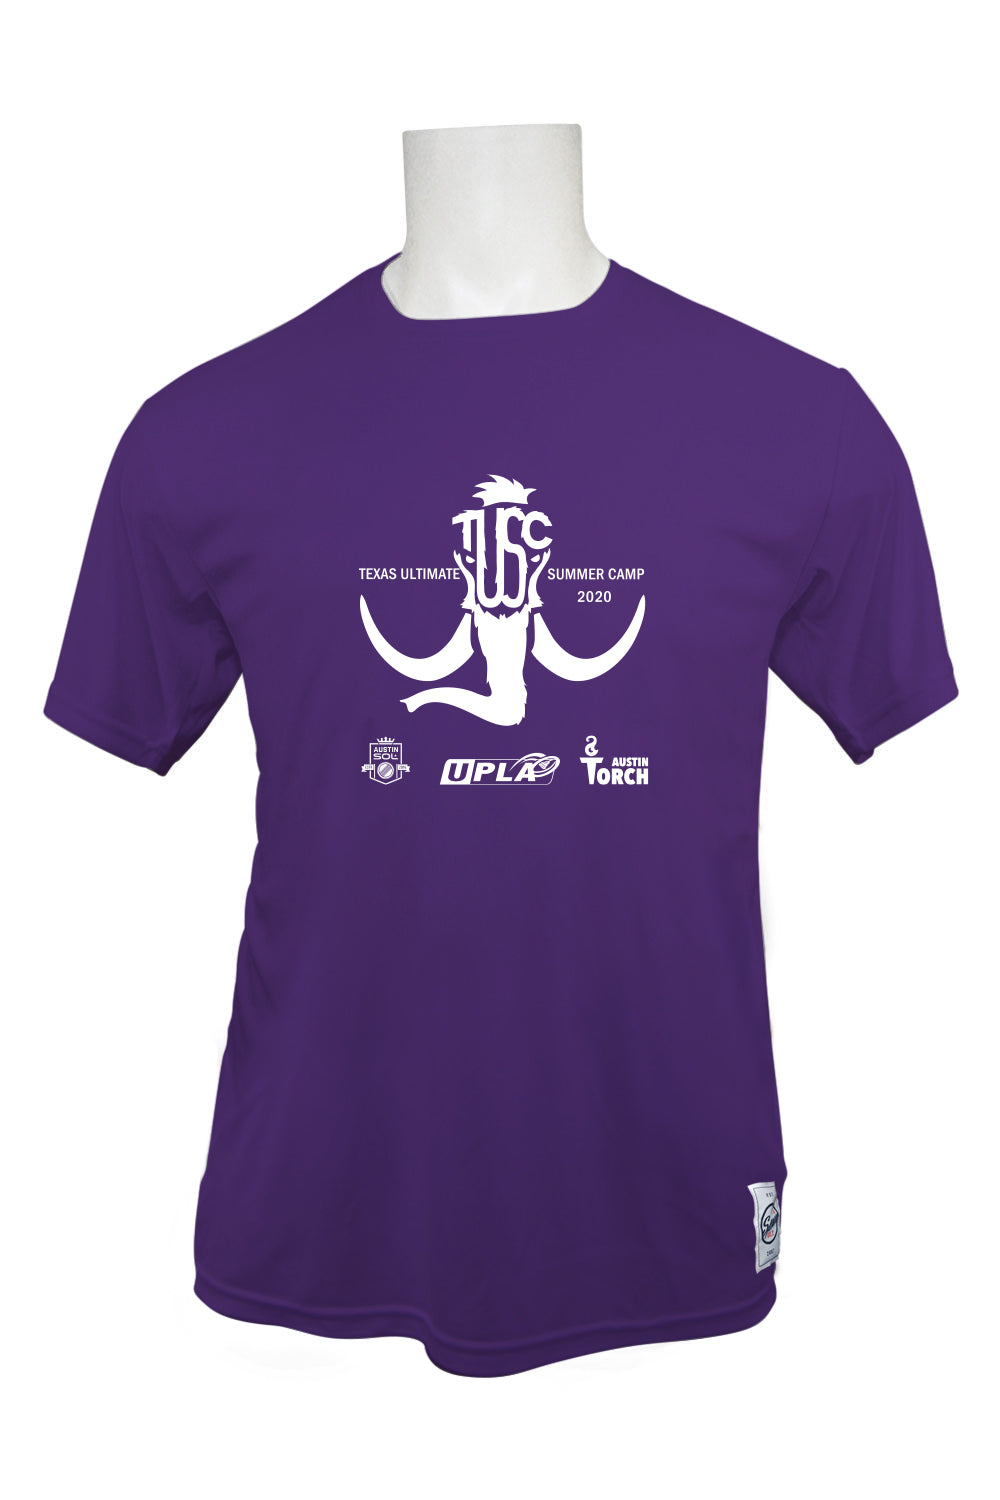 TUSC Short Sleeve Jersey (Purple)